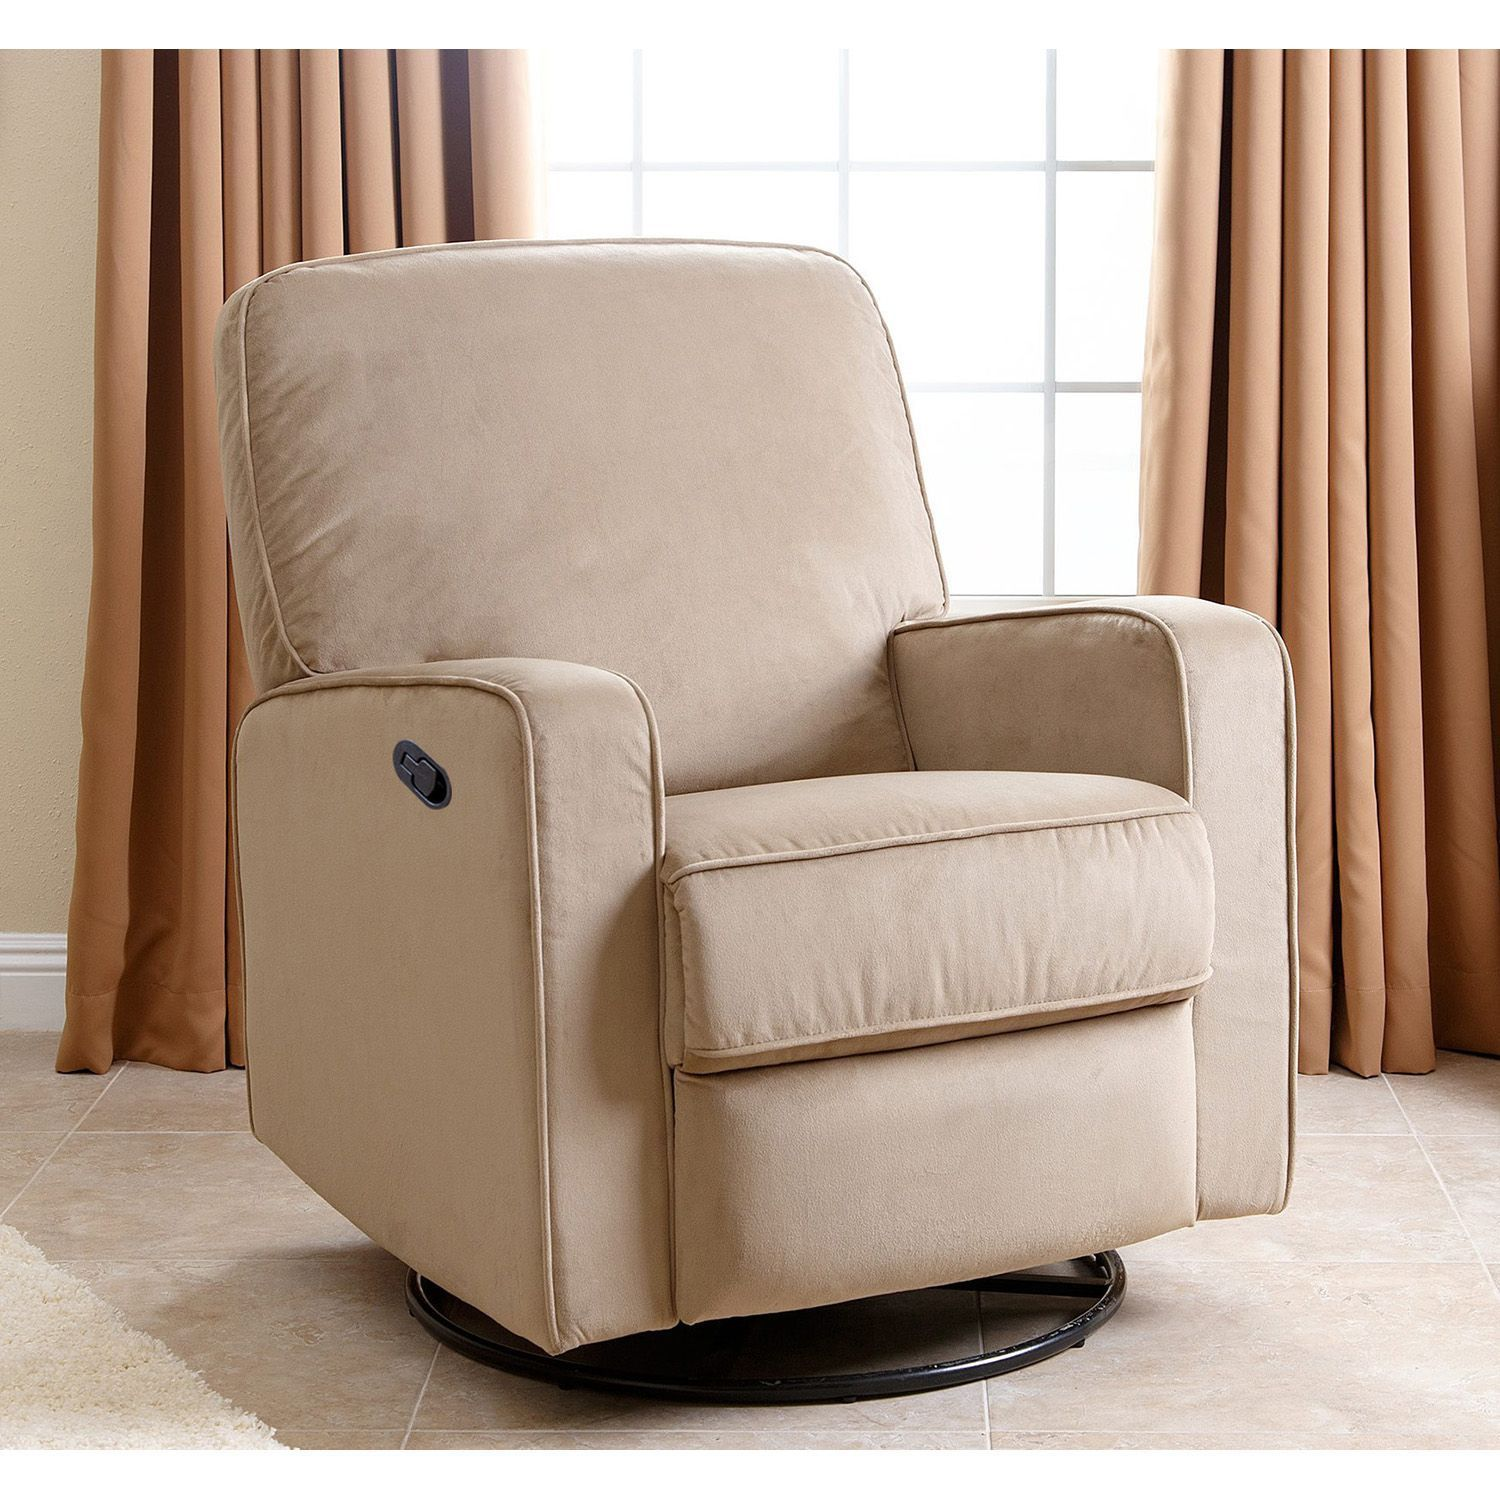 Swivel Glider Recliner Rocking Chair Nursery Upholstery